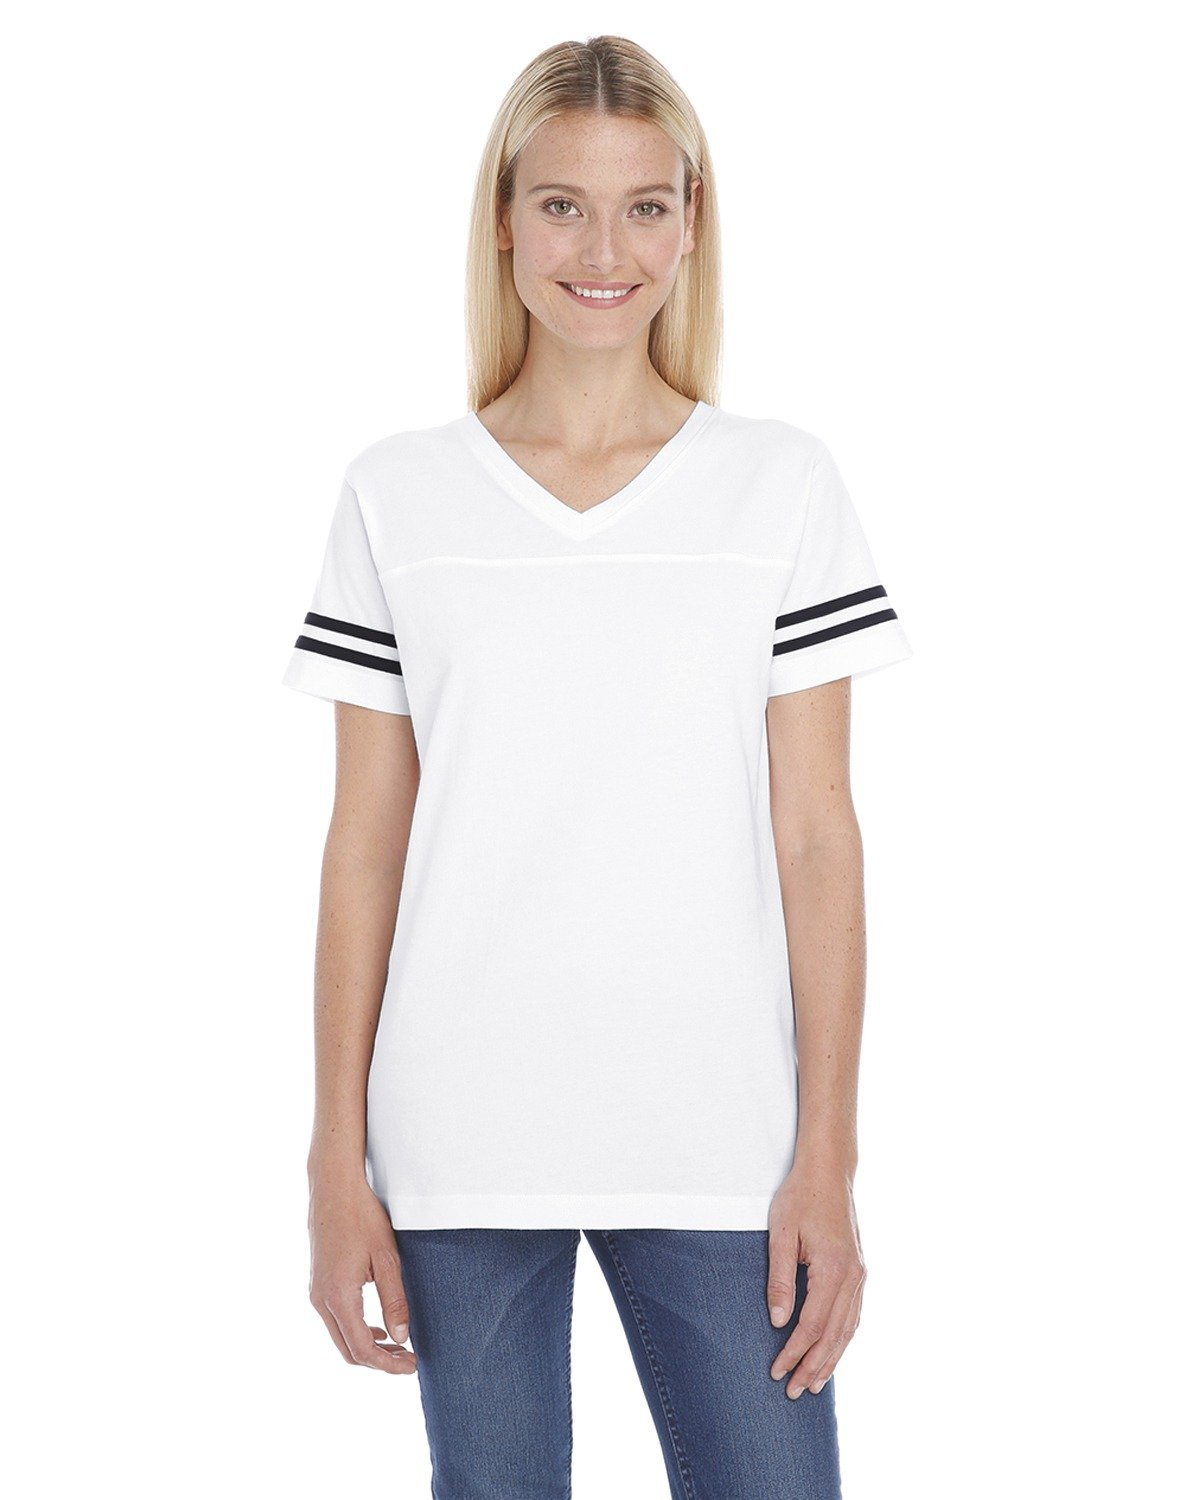 LAT Ladies' Football T-Shirt WHITE/ BLACK